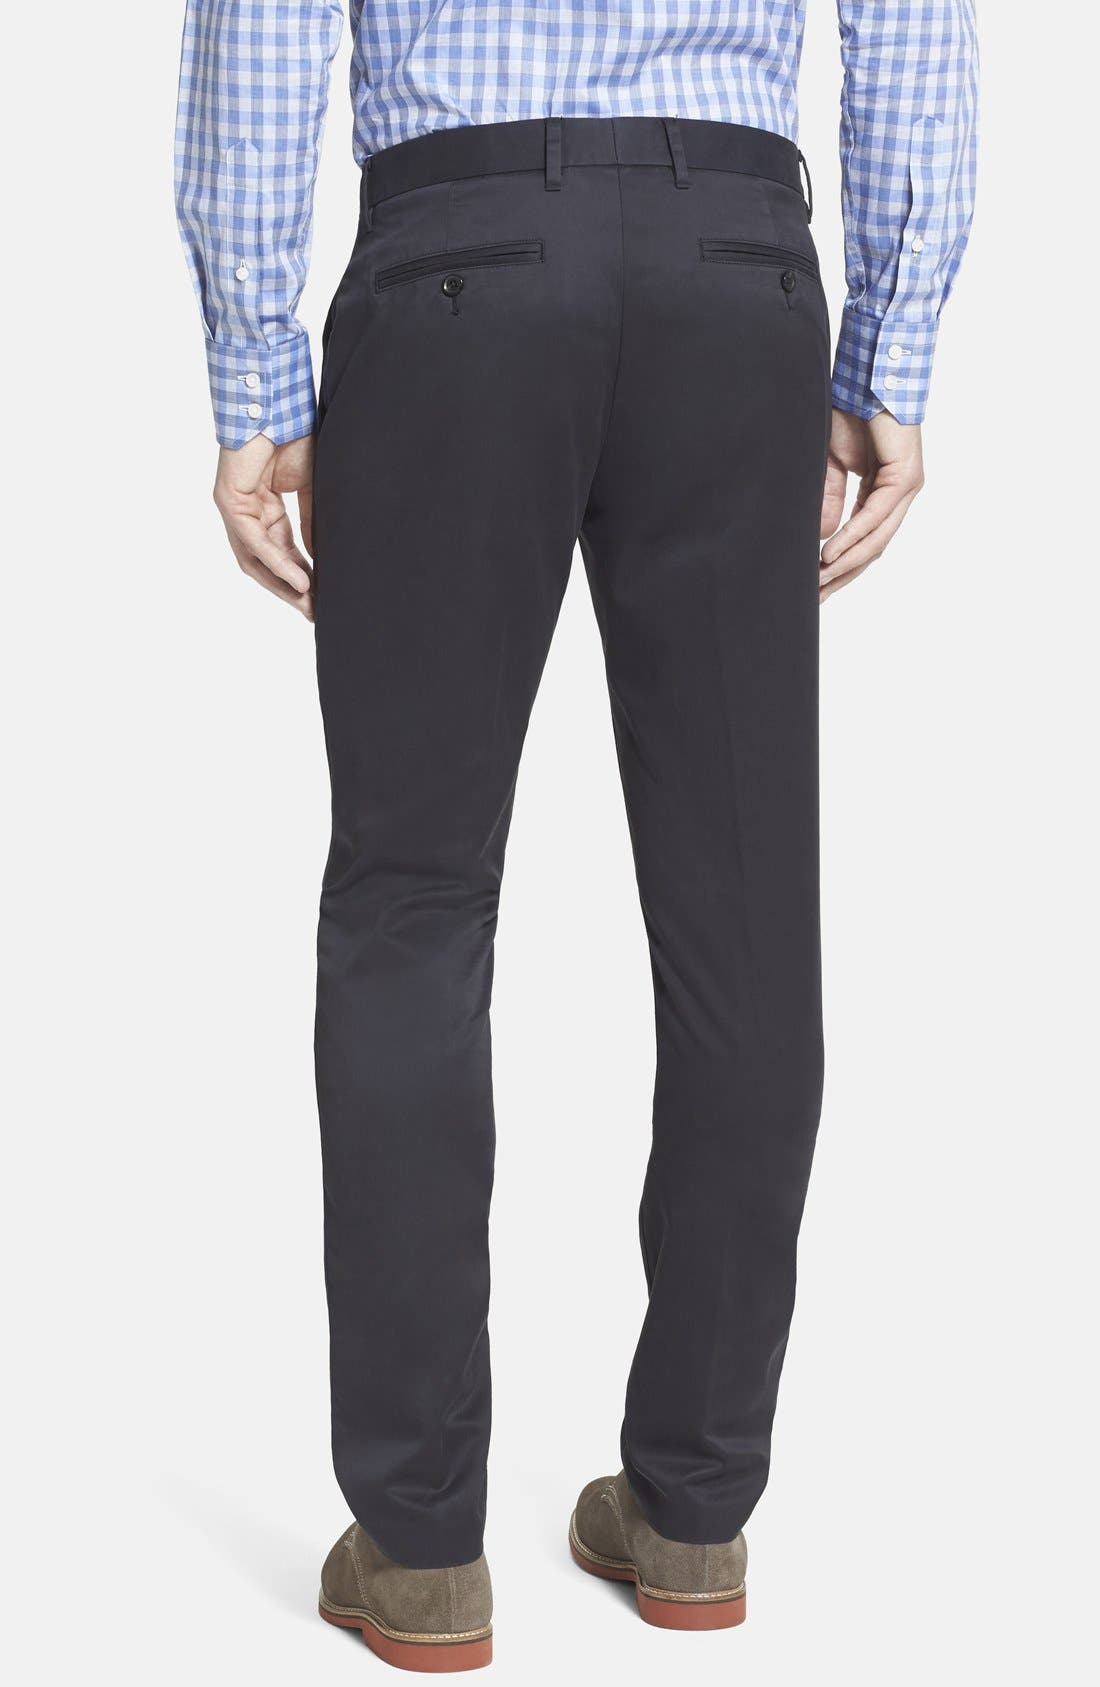 'Weekday Warriors' Non-Iron Tailored Cotton Chinos,                             Alternate thumbnail 8, color,                             TUESDAY BLACKS